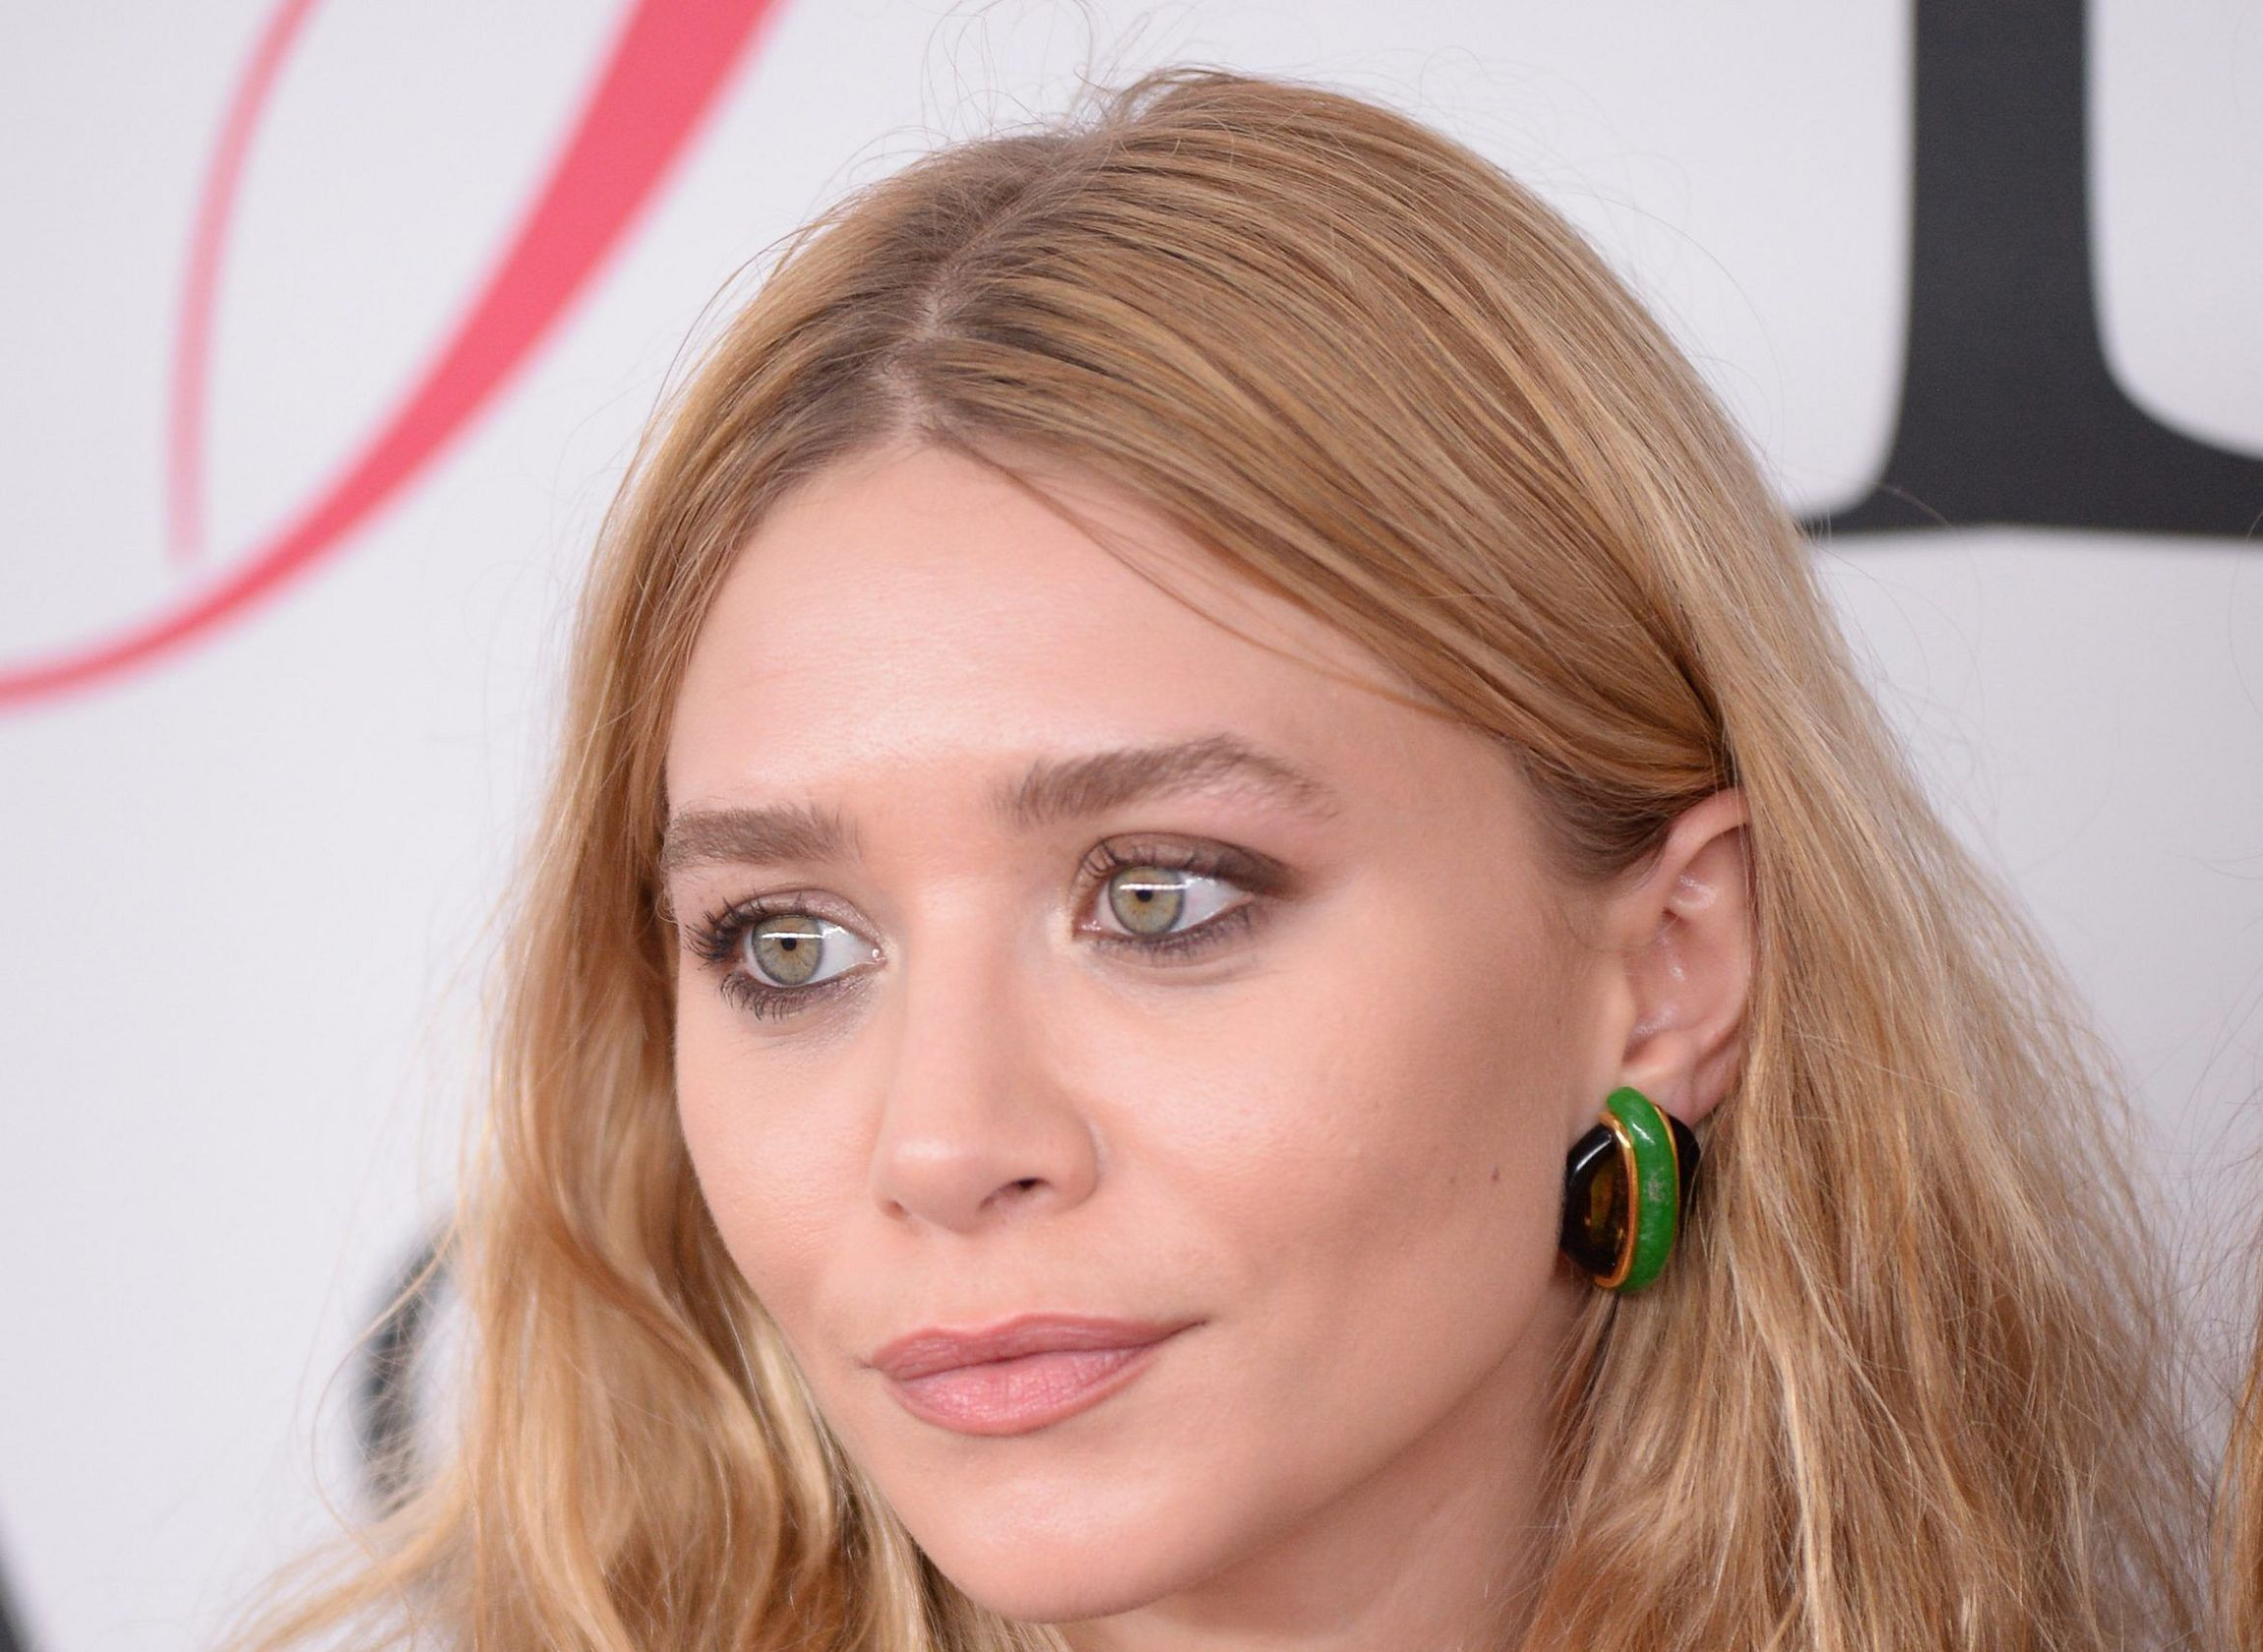 Ashley Olsen Wallpapers HD